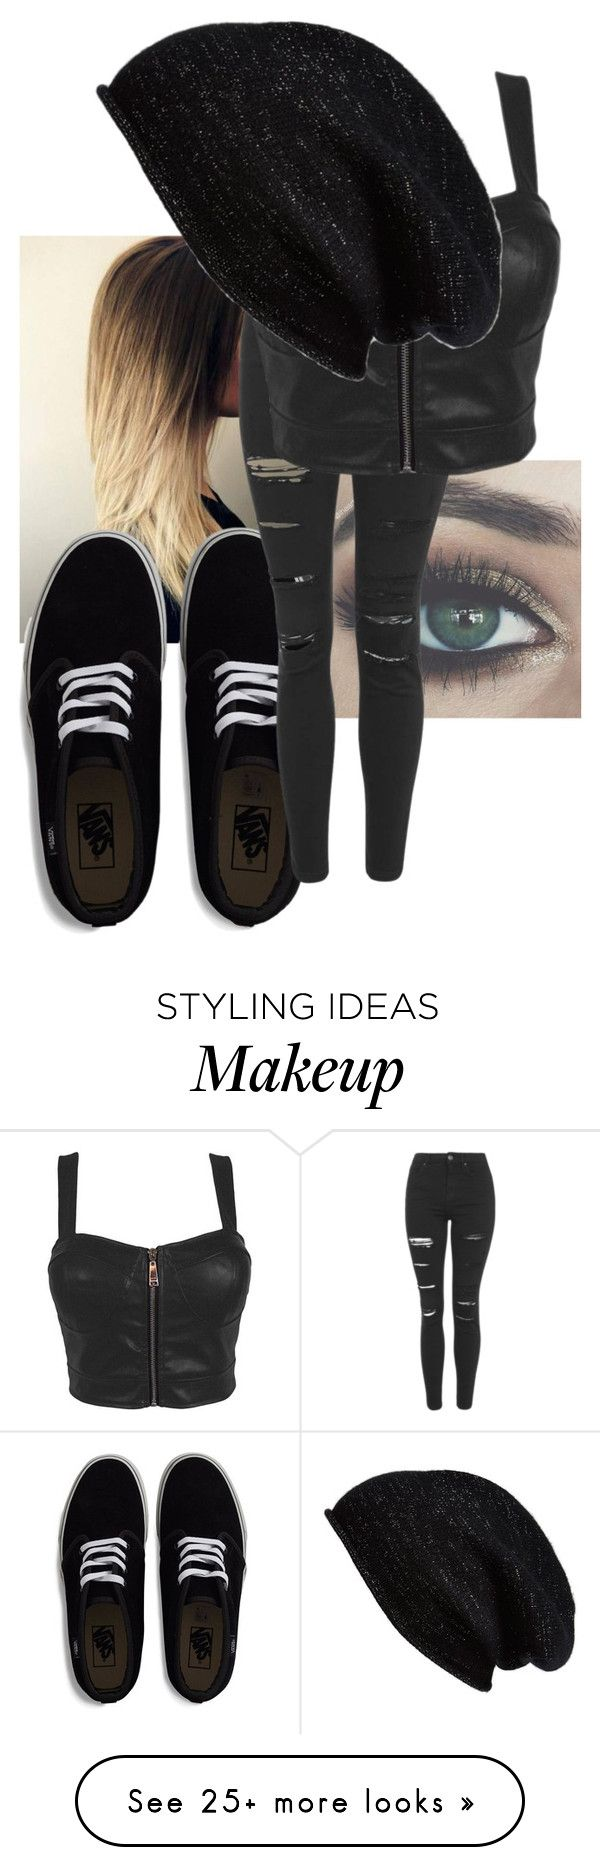 """Black like my soul"" by looking-fly on Polyvore featuring Vans, Topshop and Halogen"